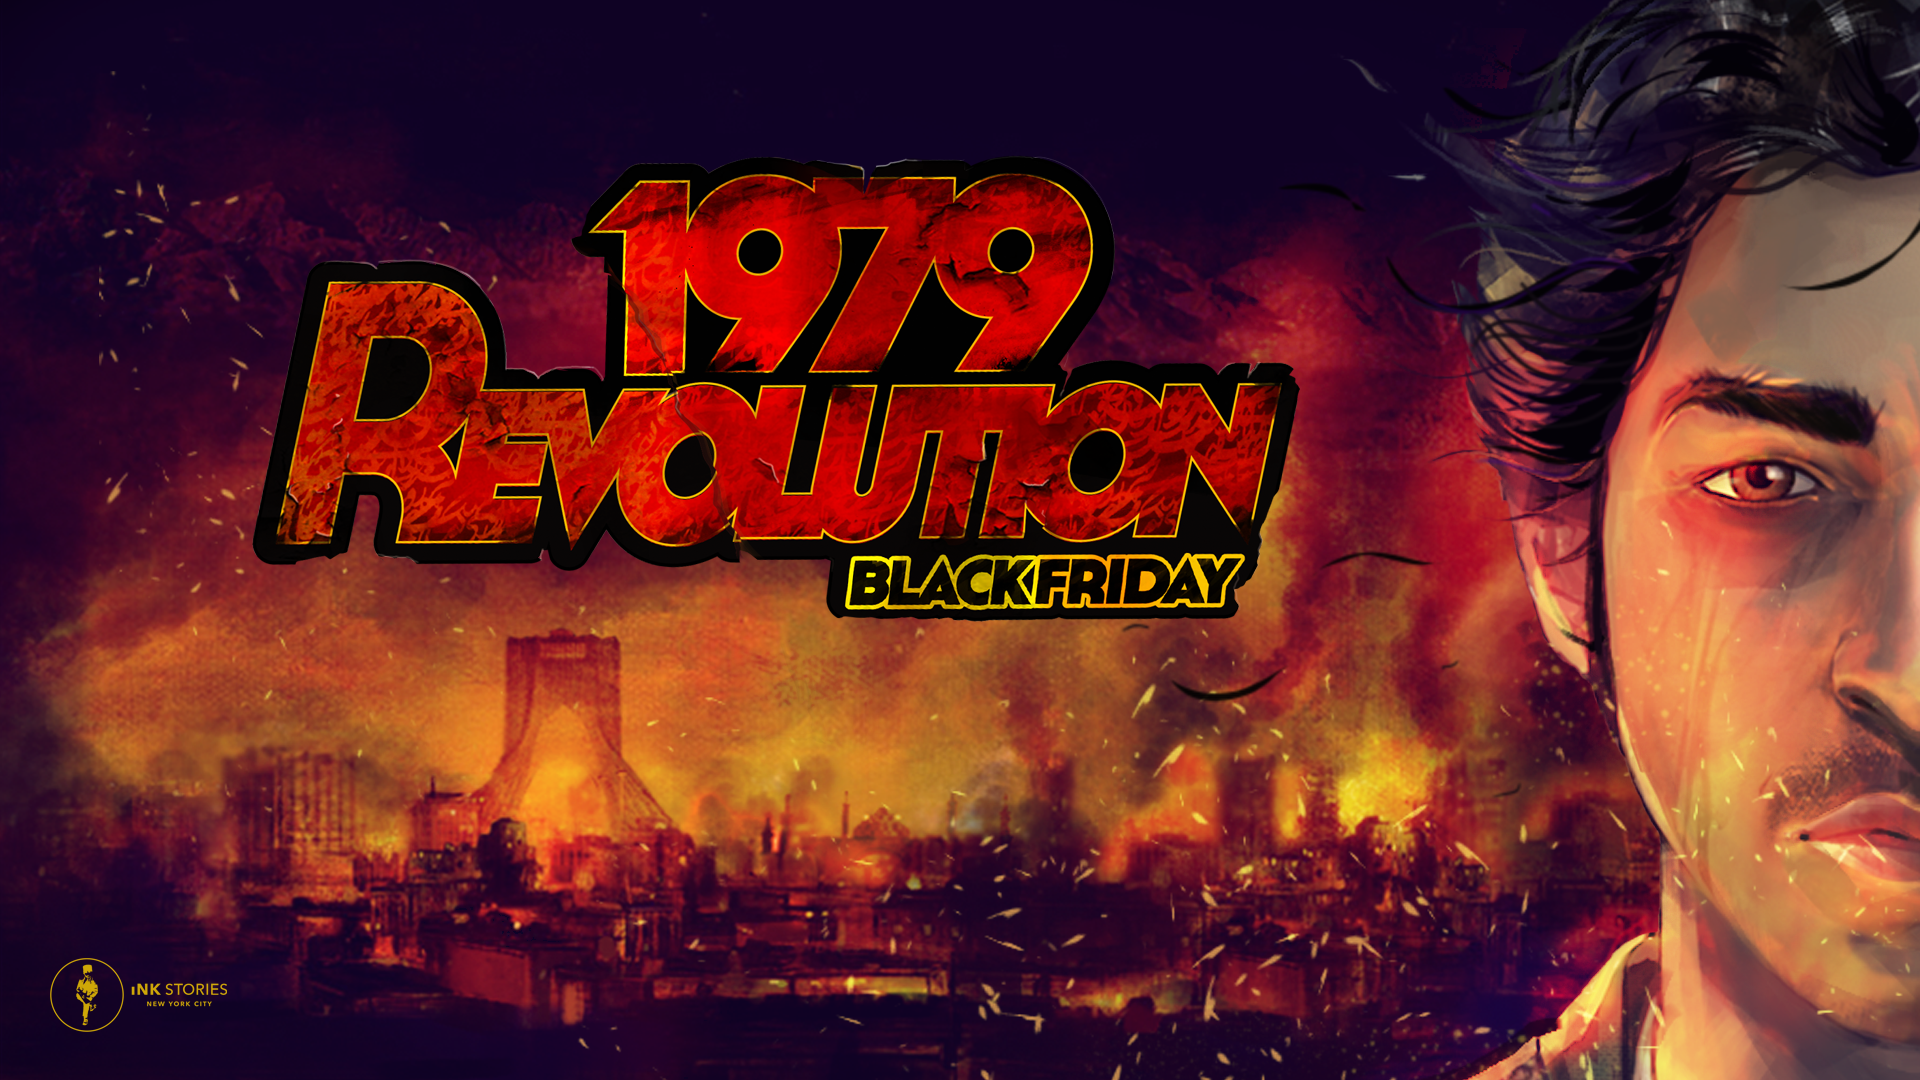 1979 Revolution  Black Friday - Wikipedia 66b4d2de56c